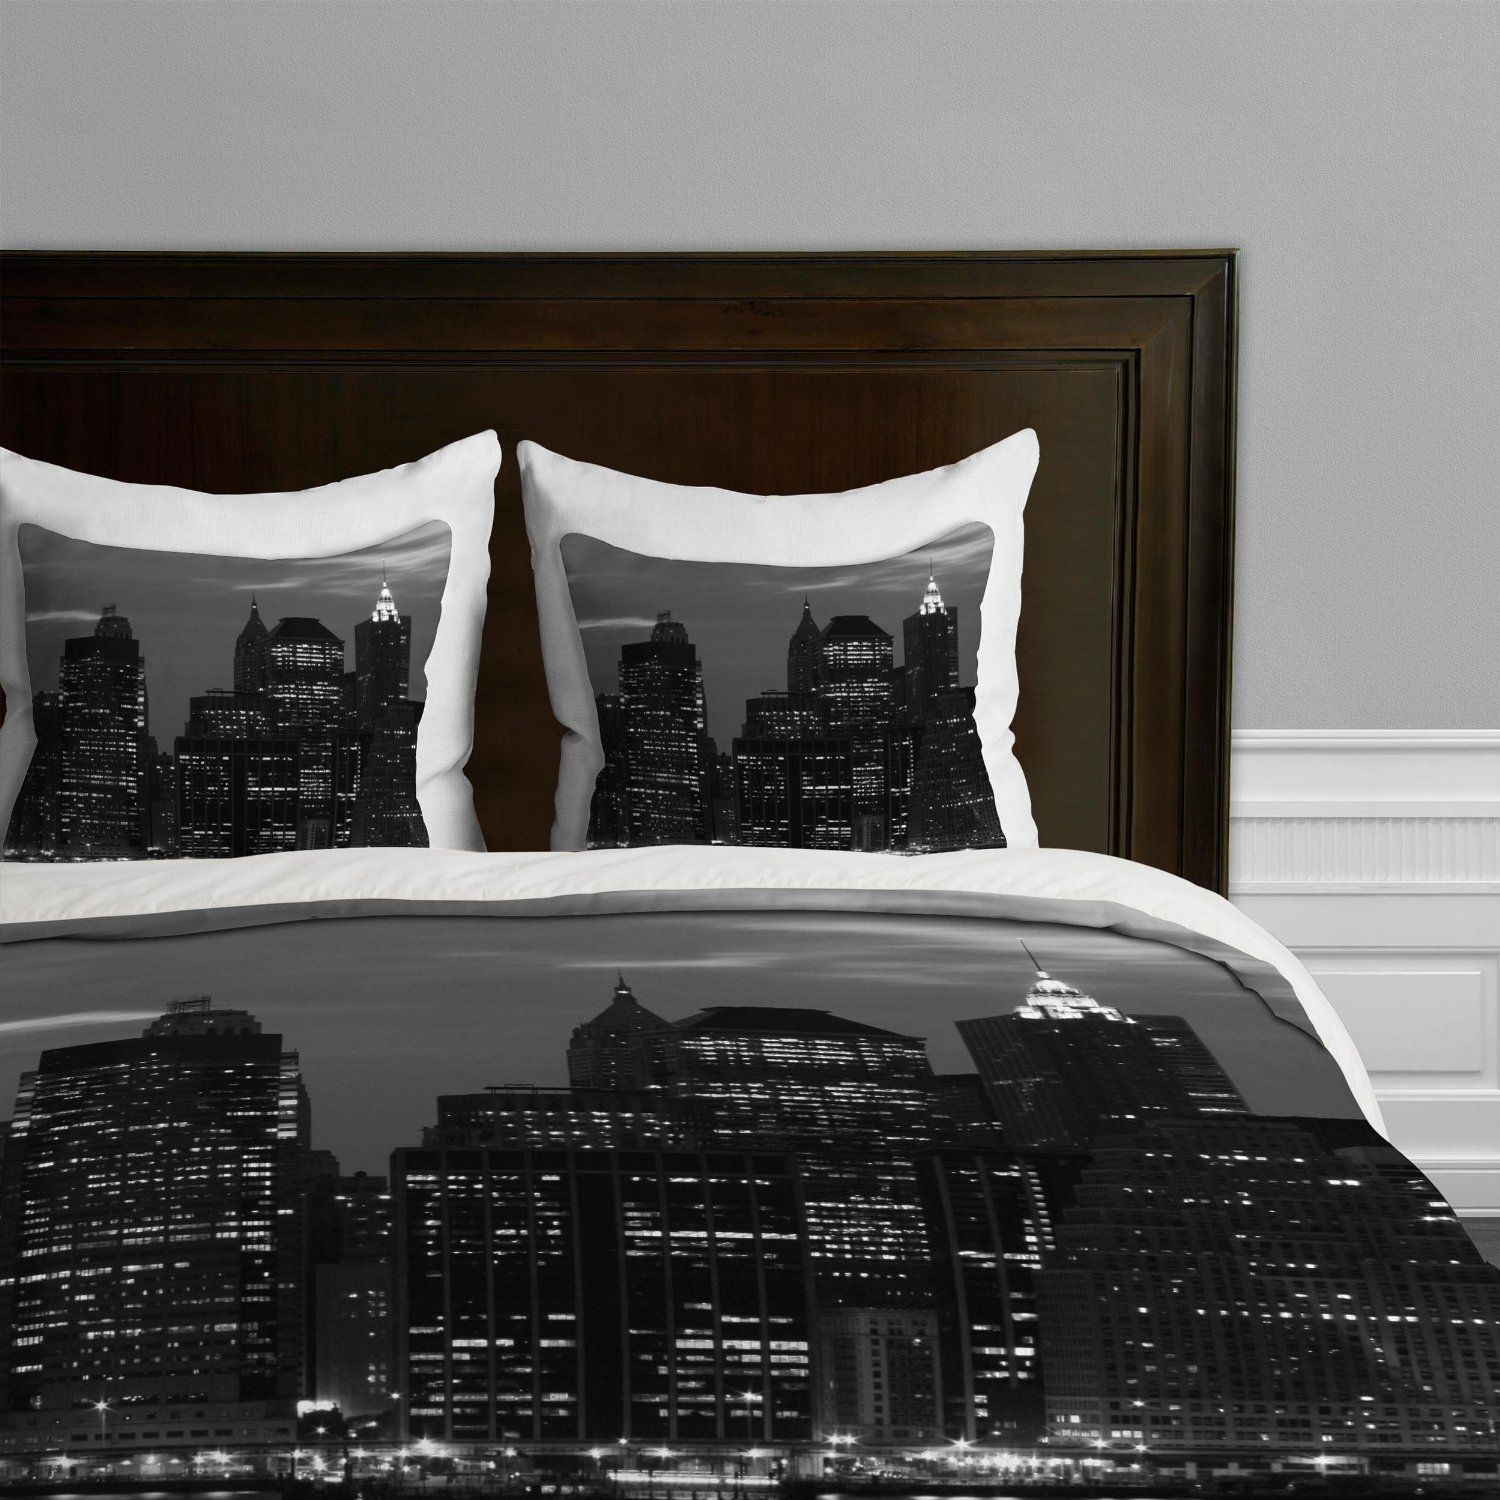 Bedroom Ideas New York new york skyline bedding & nyc themed bedroom ideas | marissa's